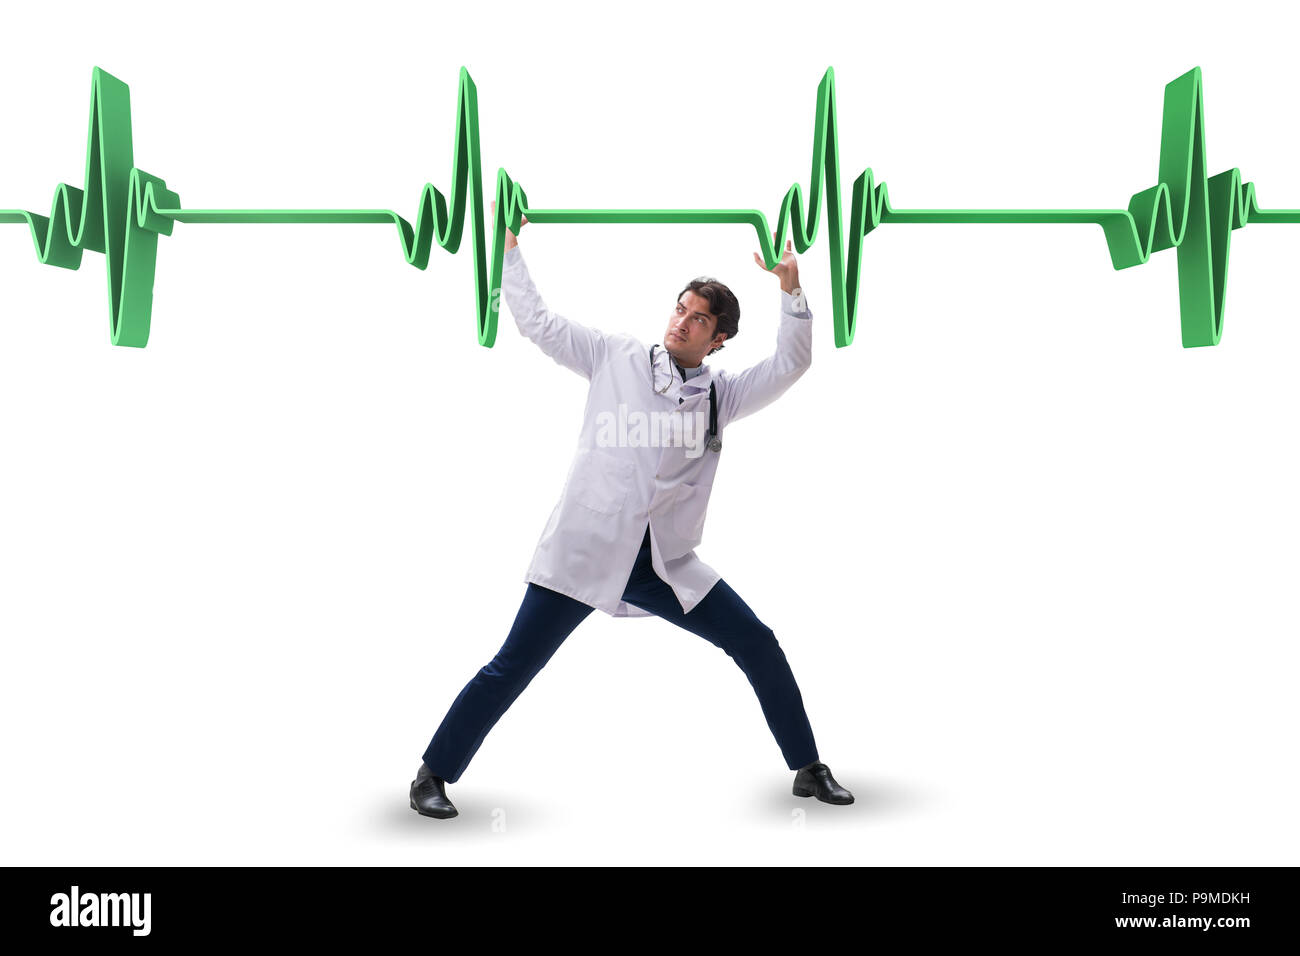 Doctor cardiologist supporting cardiogram heart line Stock